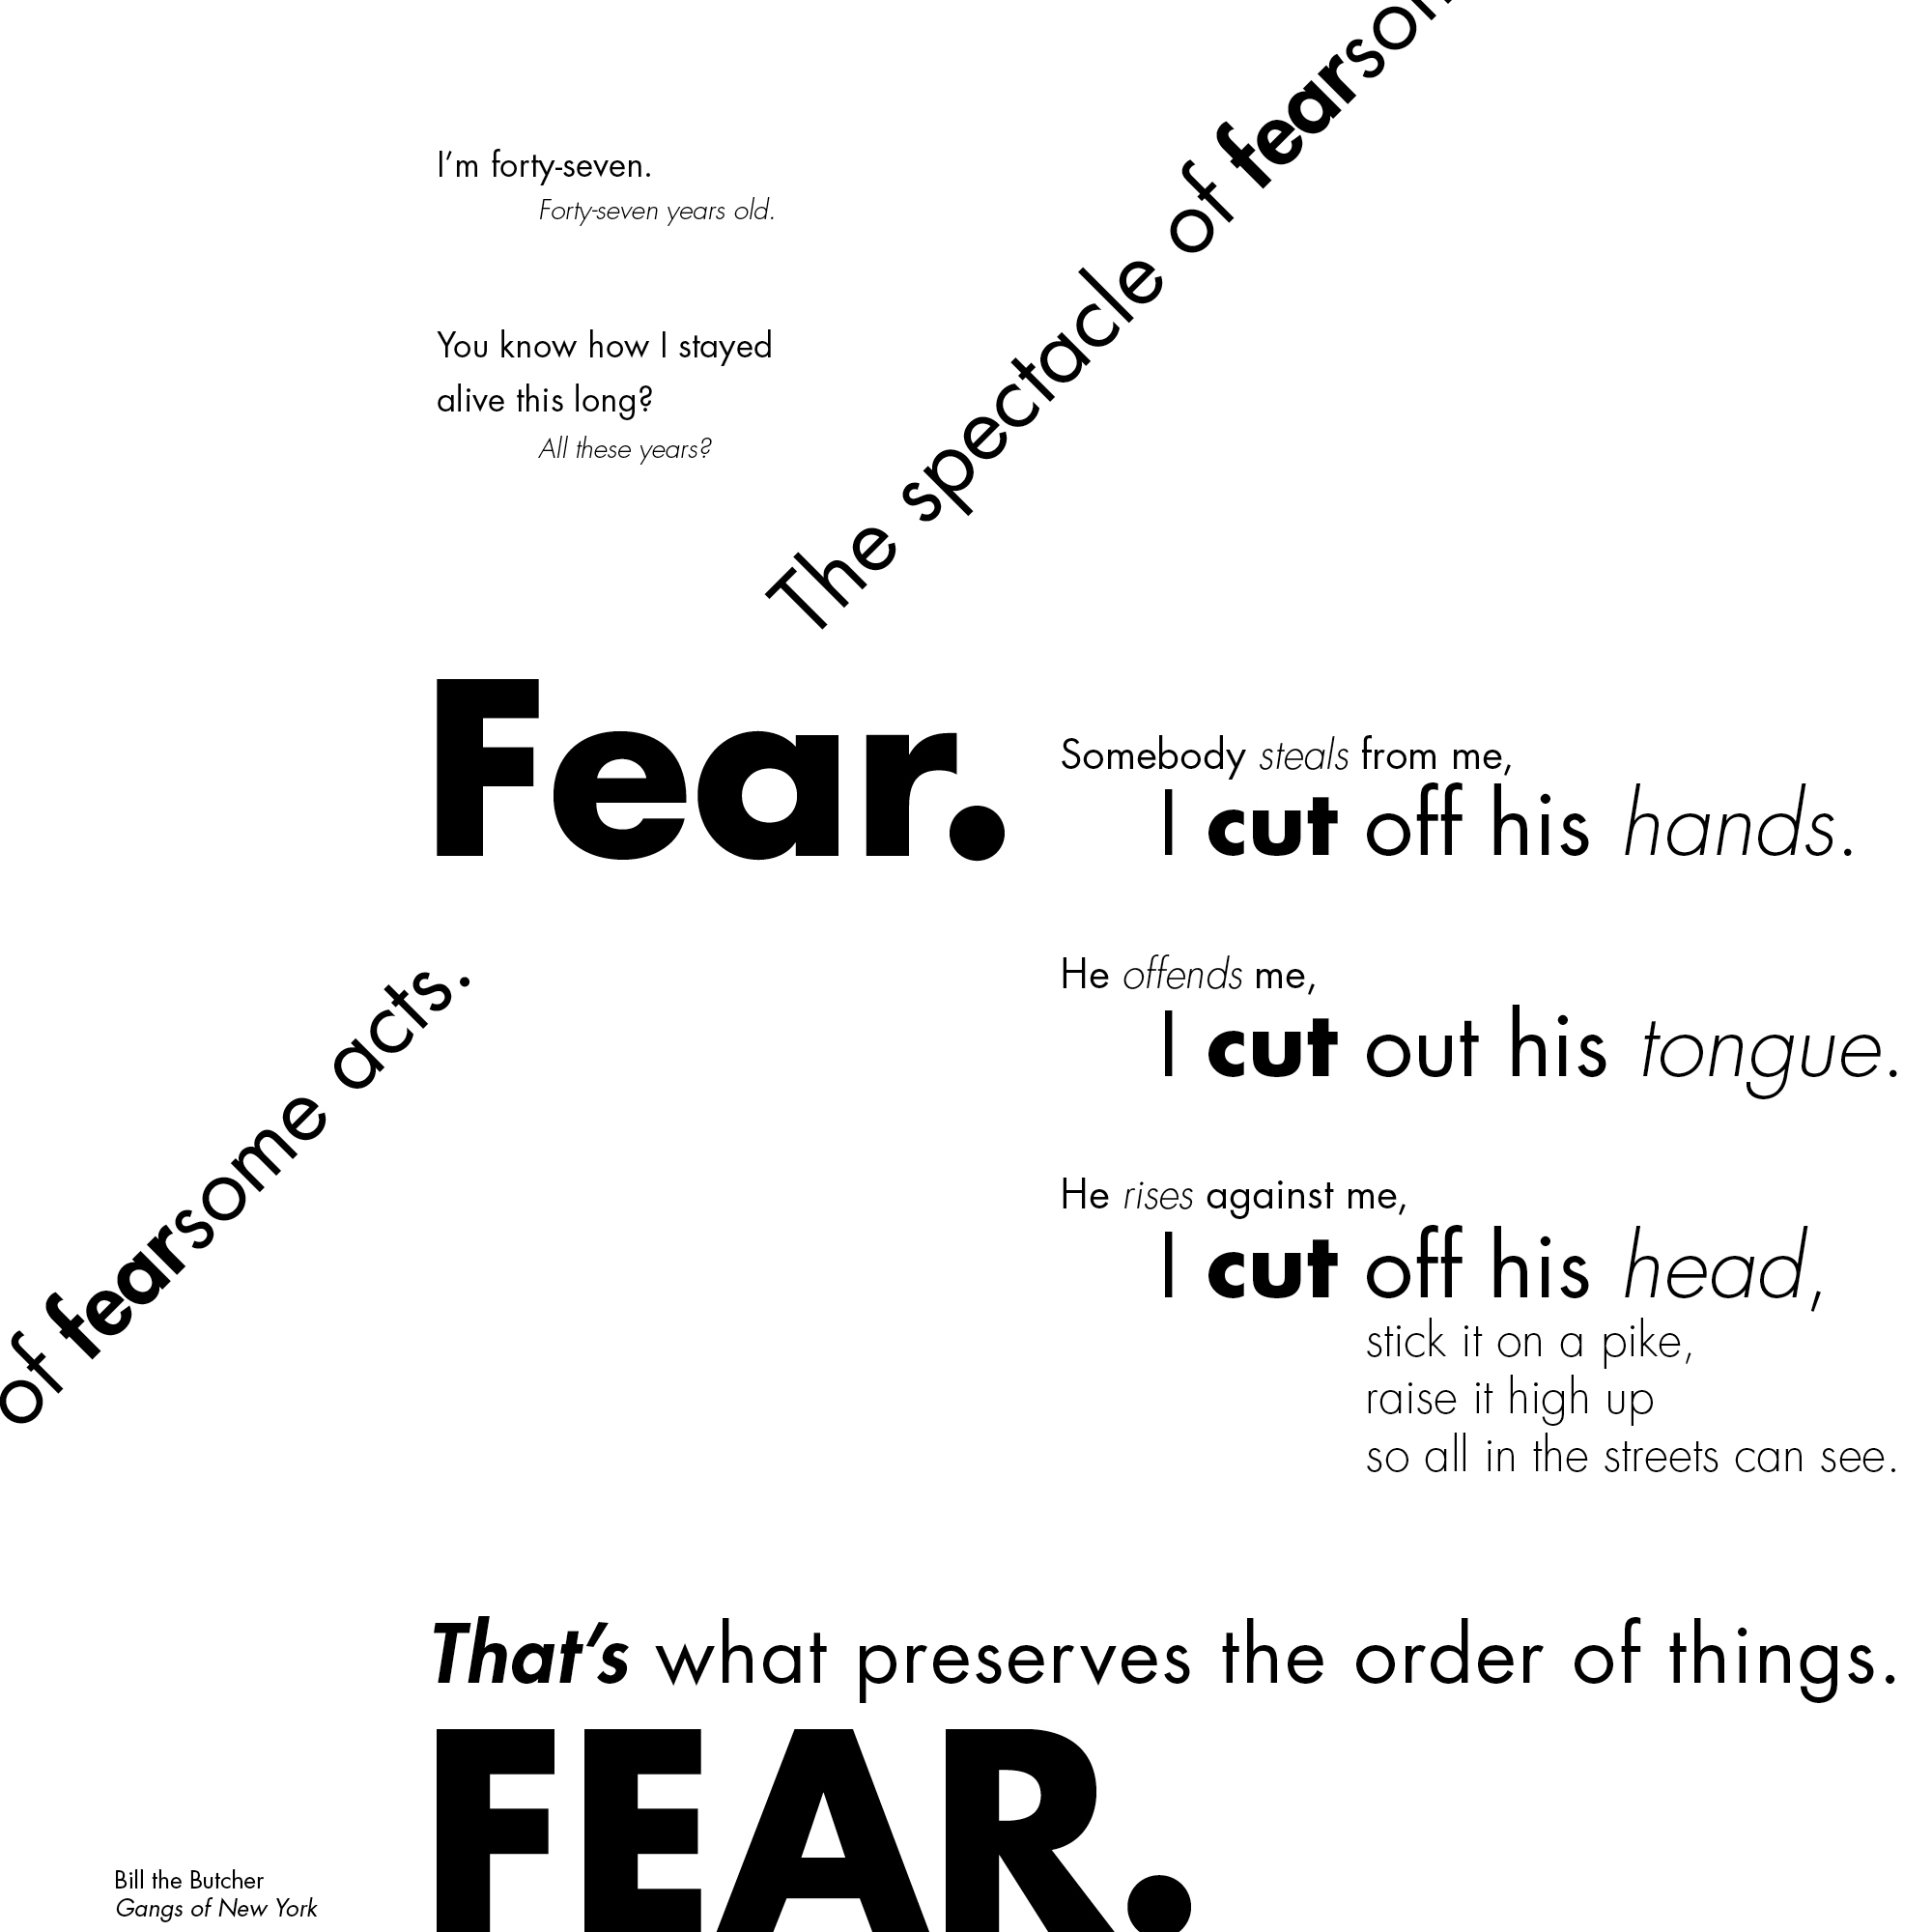 Ryan terry movie monologue 2 single typeface multiple styles and point si ccuart Image collections